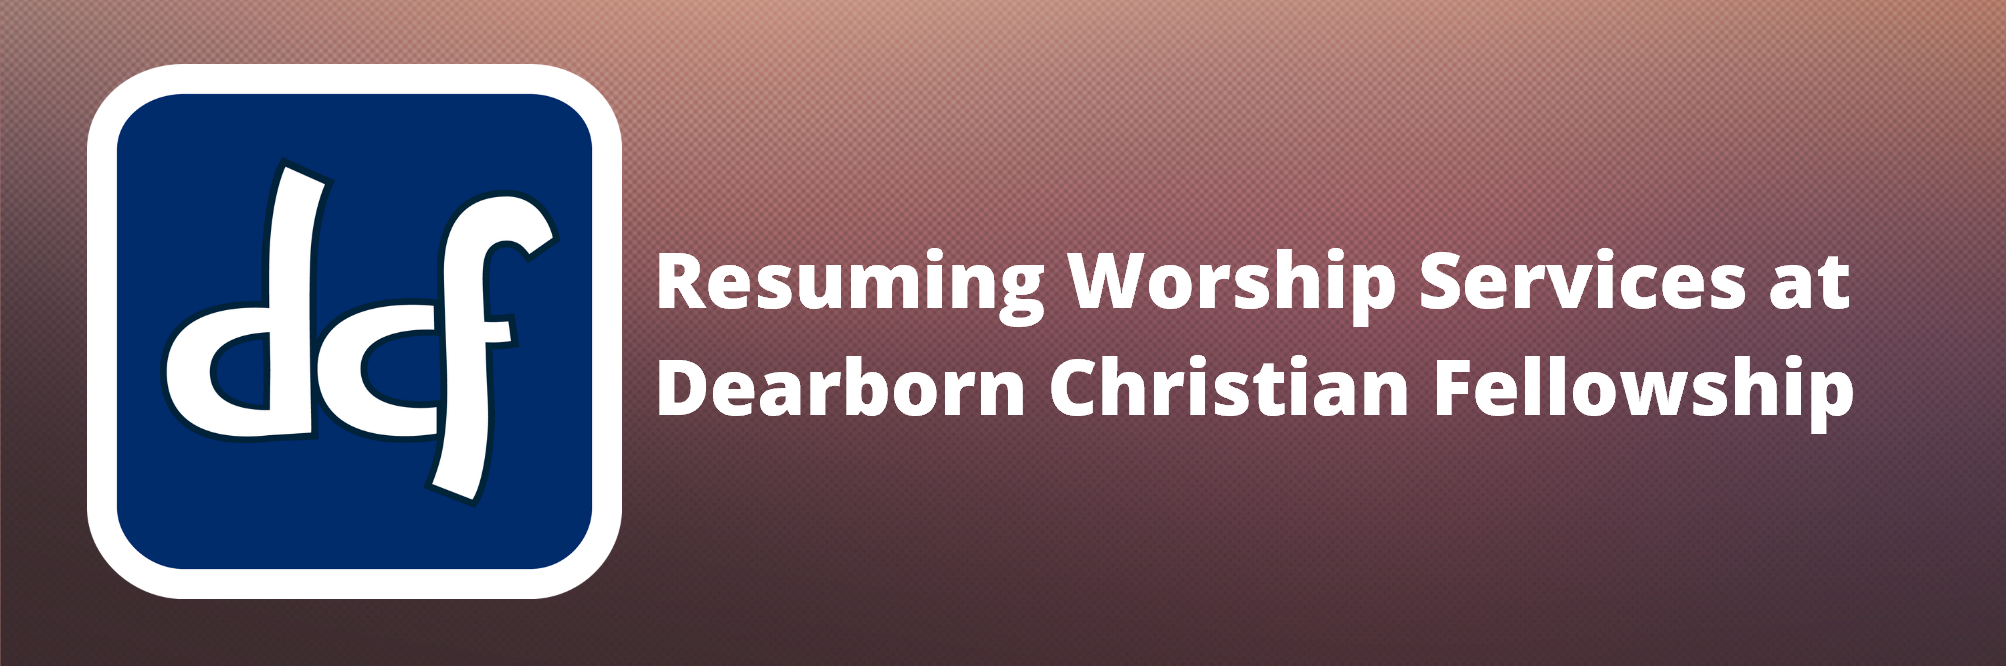 resuming worship